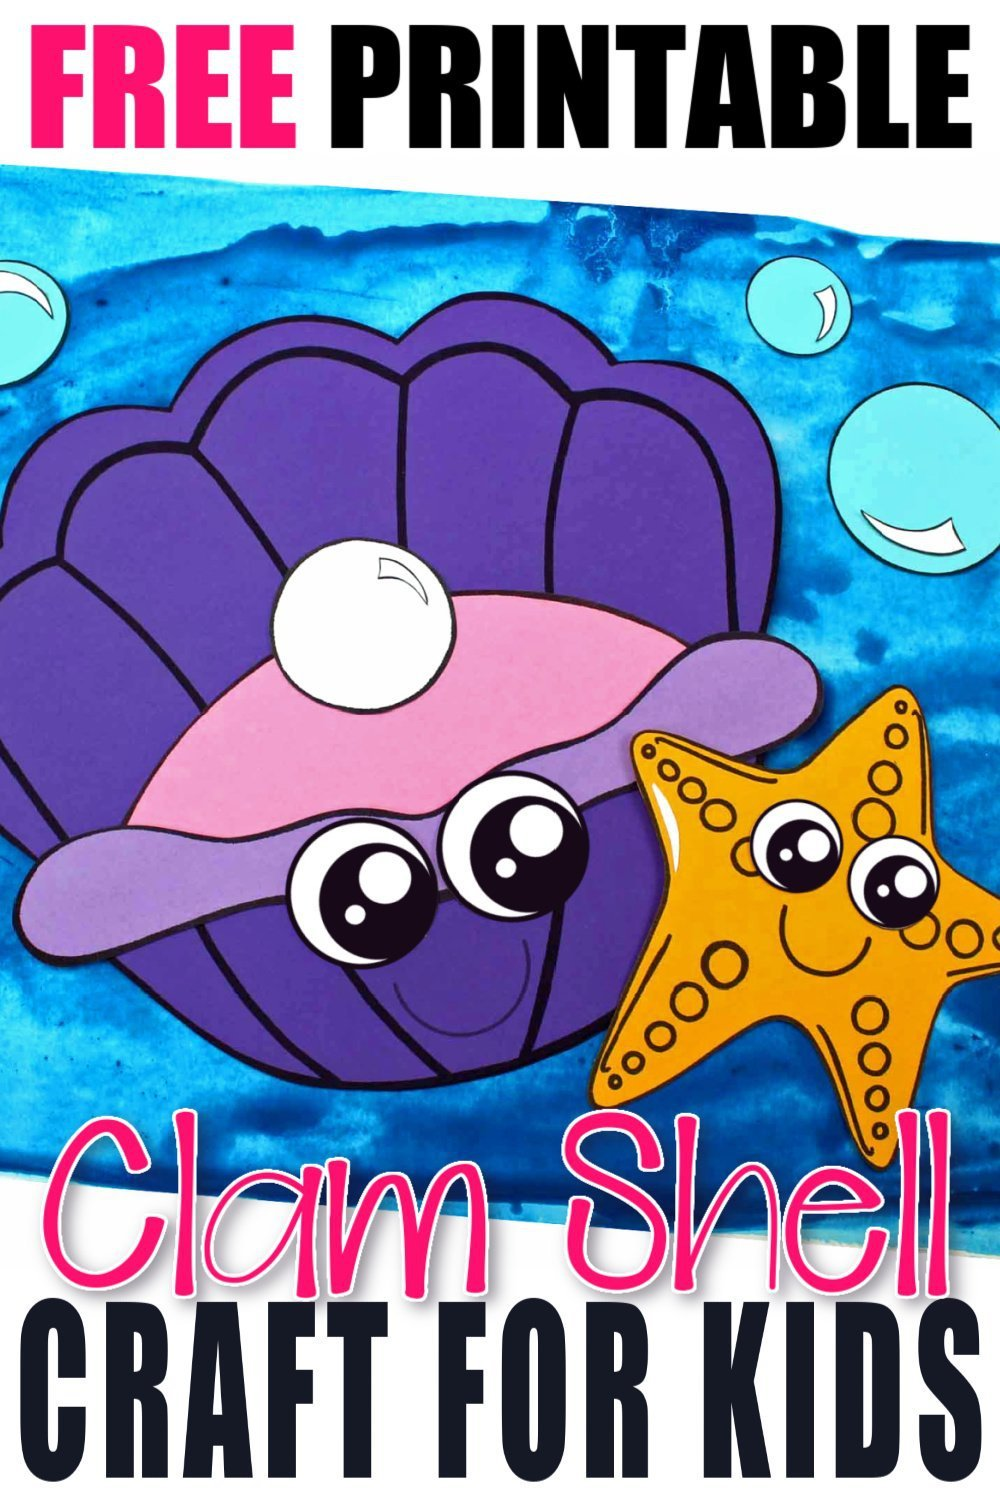 Whether you are taking a trip to the beach or learning about seashells, this adorable clam shell, free printable craft is for you! Use the clam template during a vacation road trip, at home, or in the classroom during your under the sea unit or ocean theme! #clamcrafts #clamshellcrafts #oceananimalcrafts #oceananimals